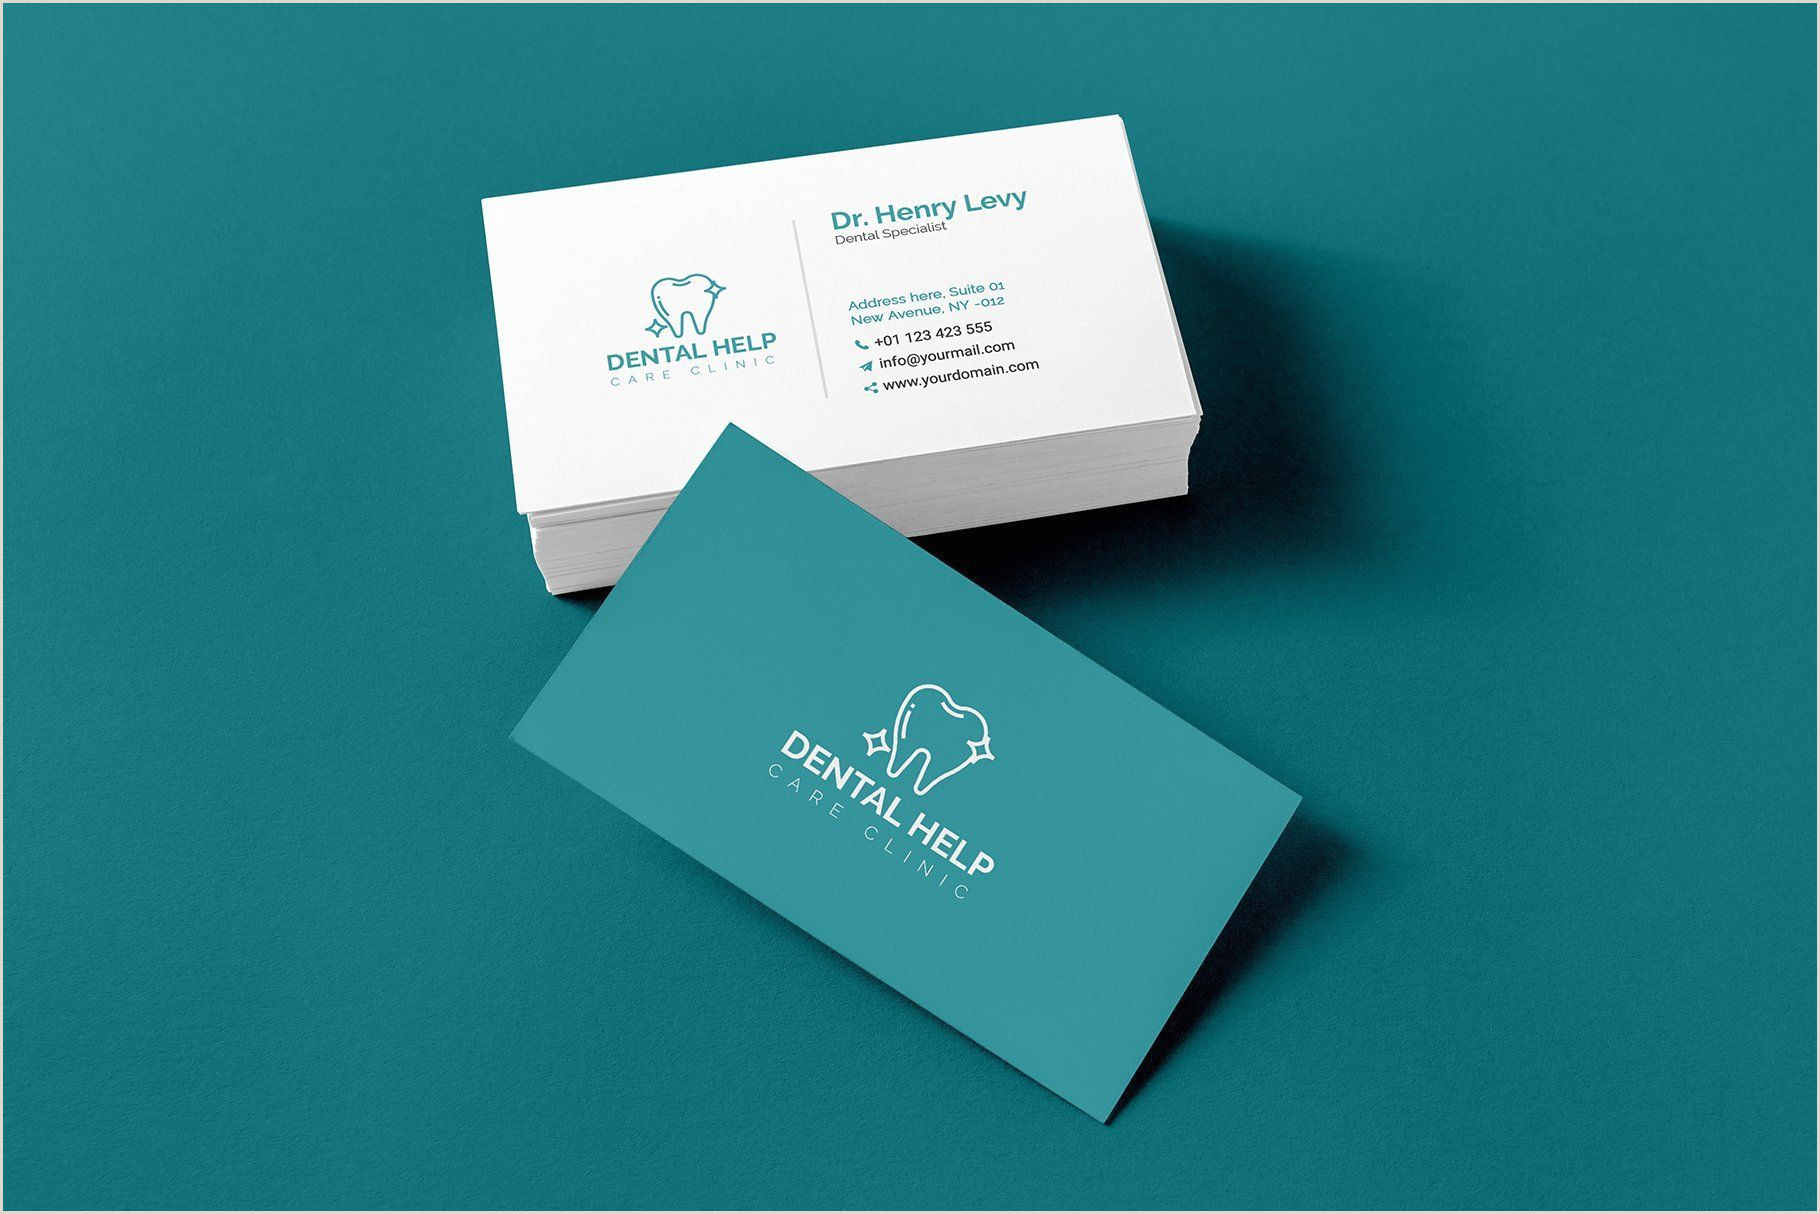 Best Business Card Designs 2020 Dentist Business Card Templates In 2020